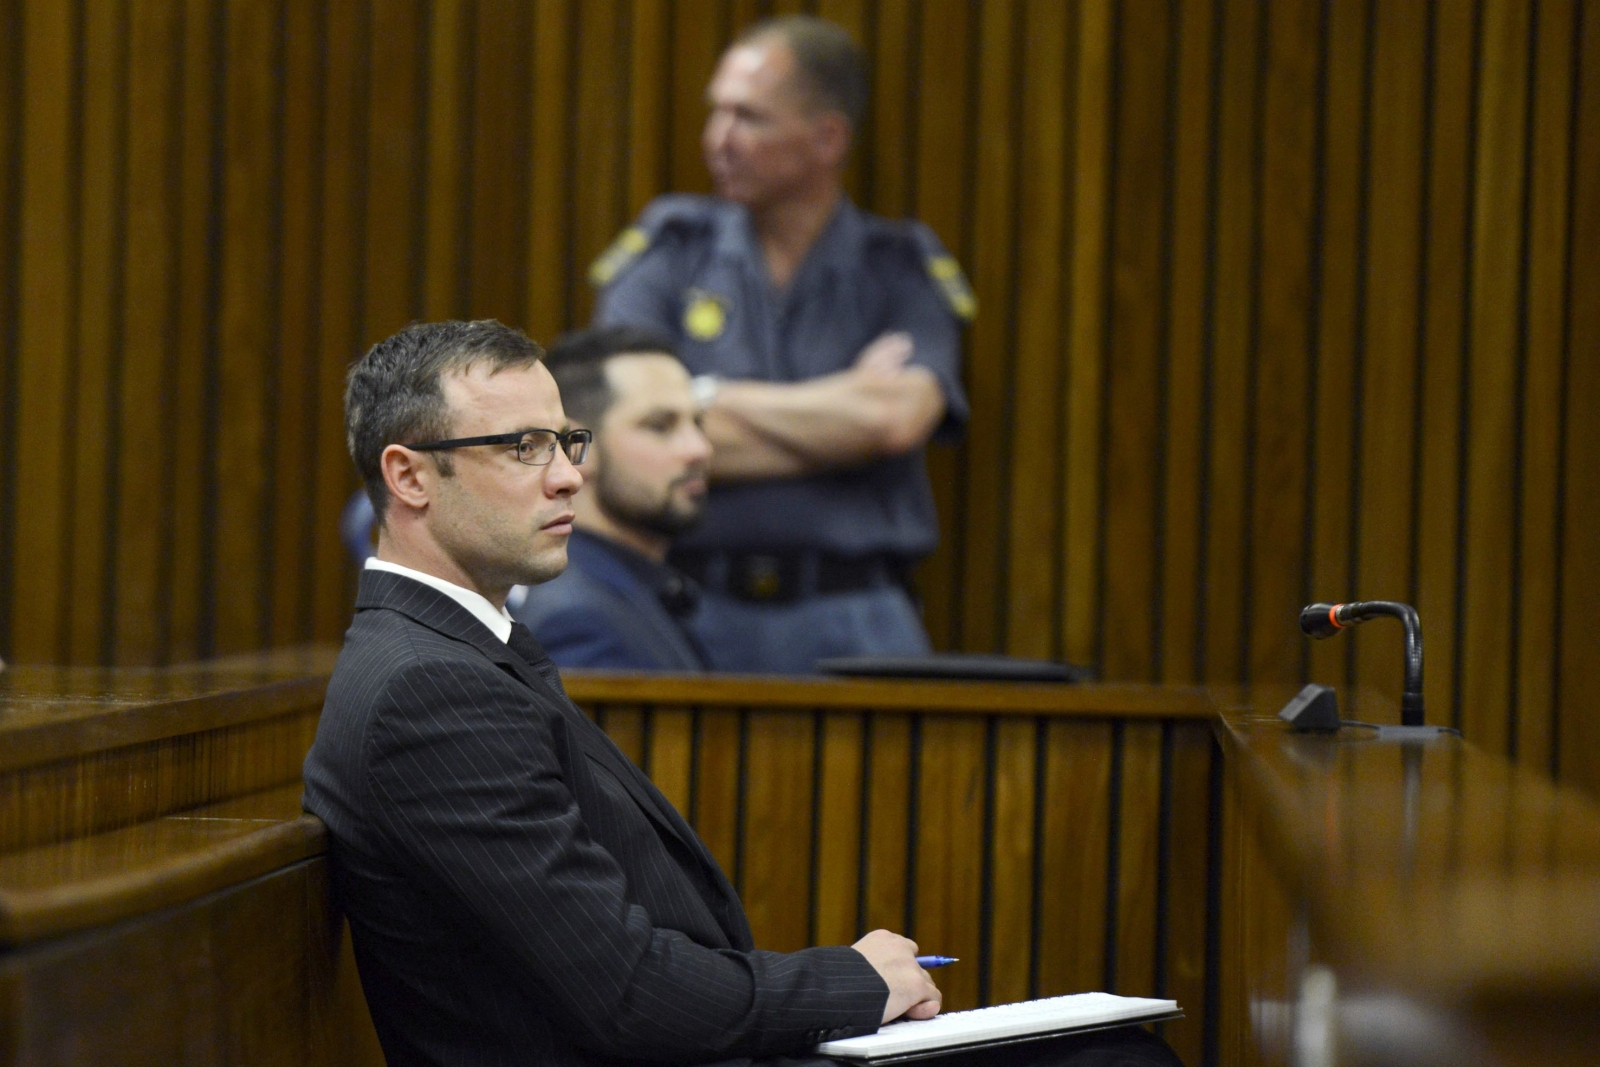 Prison would 'Break' Pistorius - Defence Witness